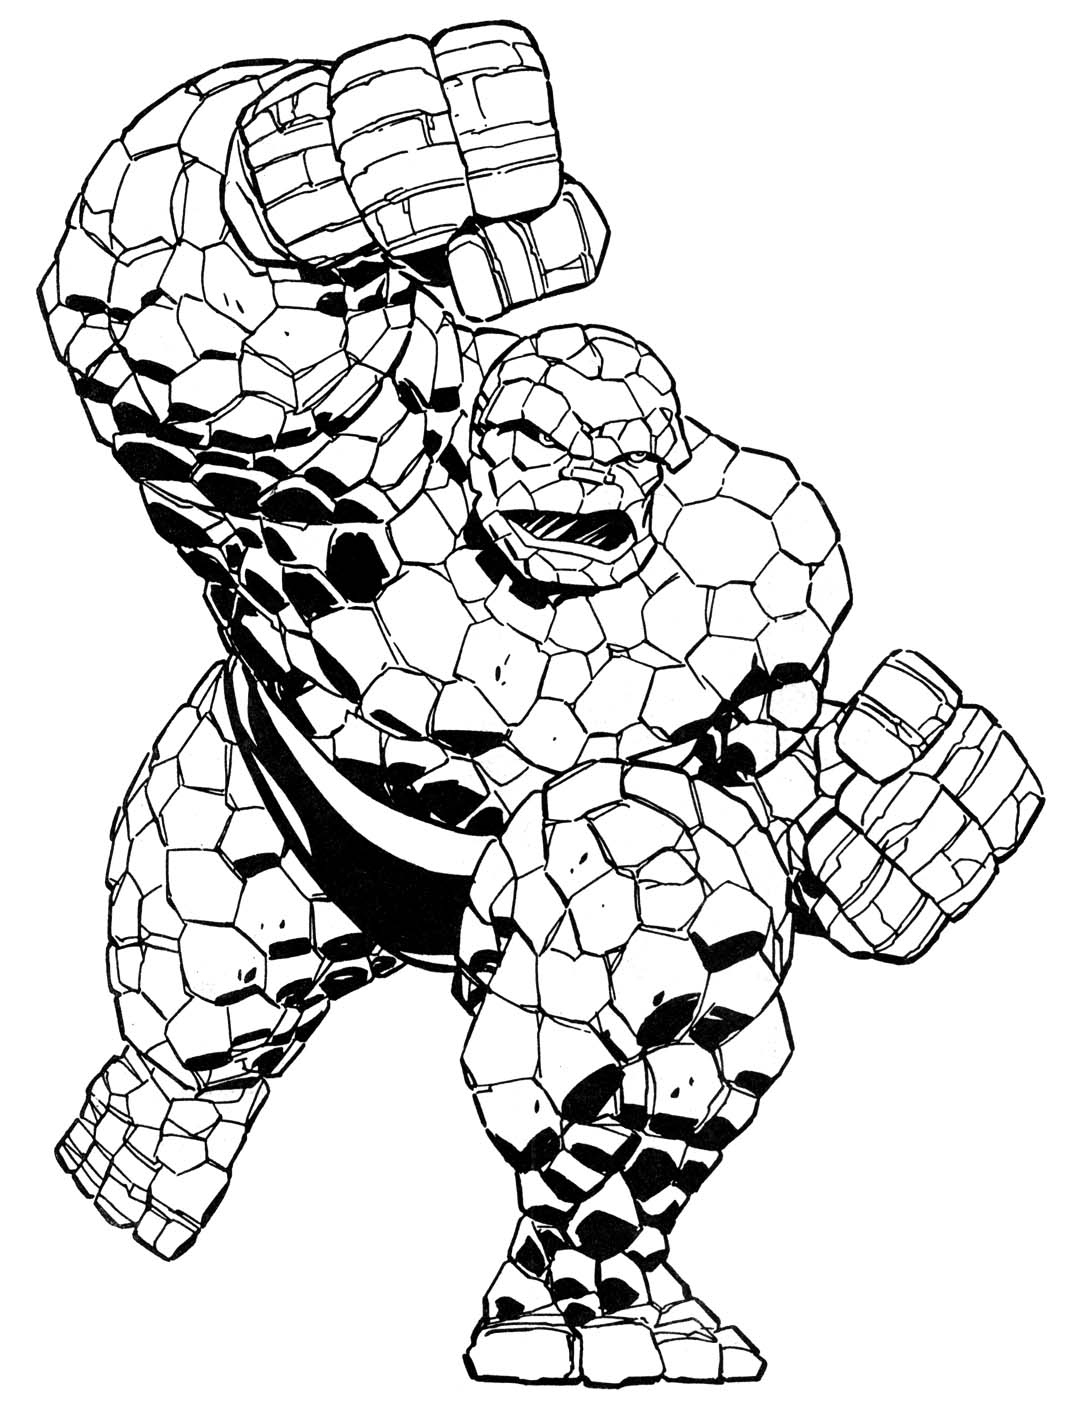 Marvel Superheroes Drawing at GetDrawings.com   Free for personal ...